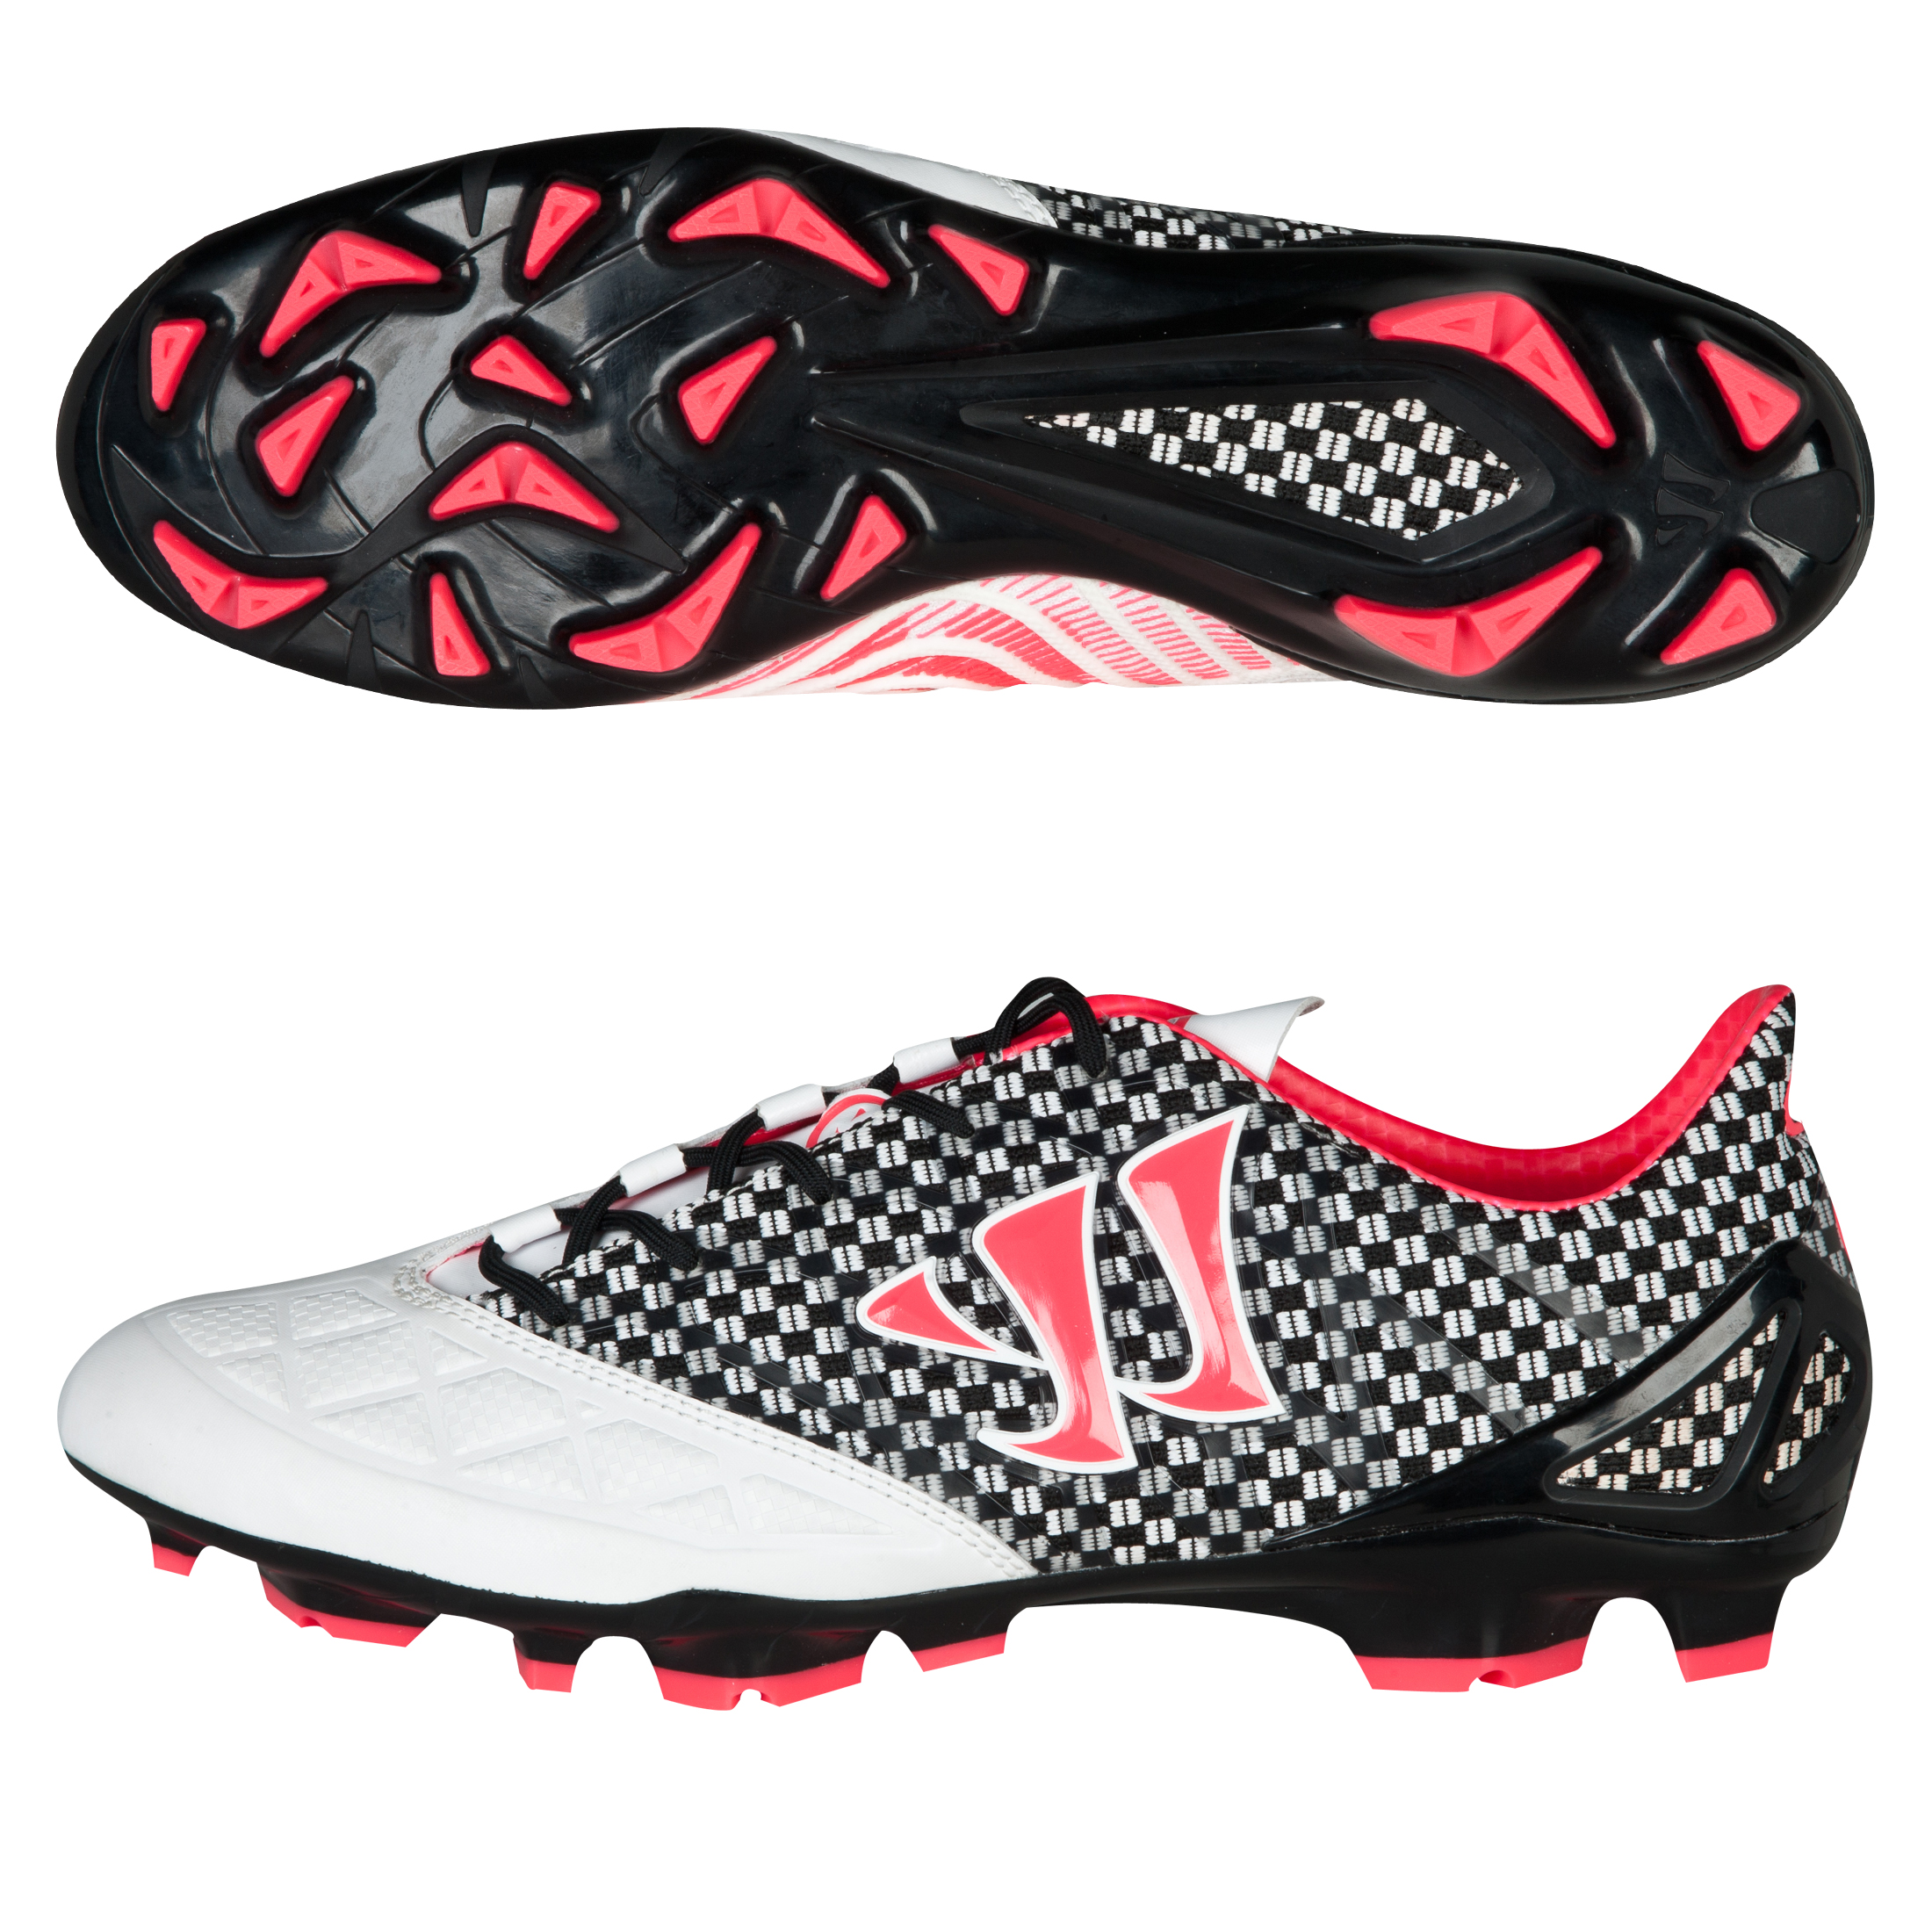 Warrior Sports Gambler S-Lite Firm Ground Football Boots- Whi/Blk/Pink White